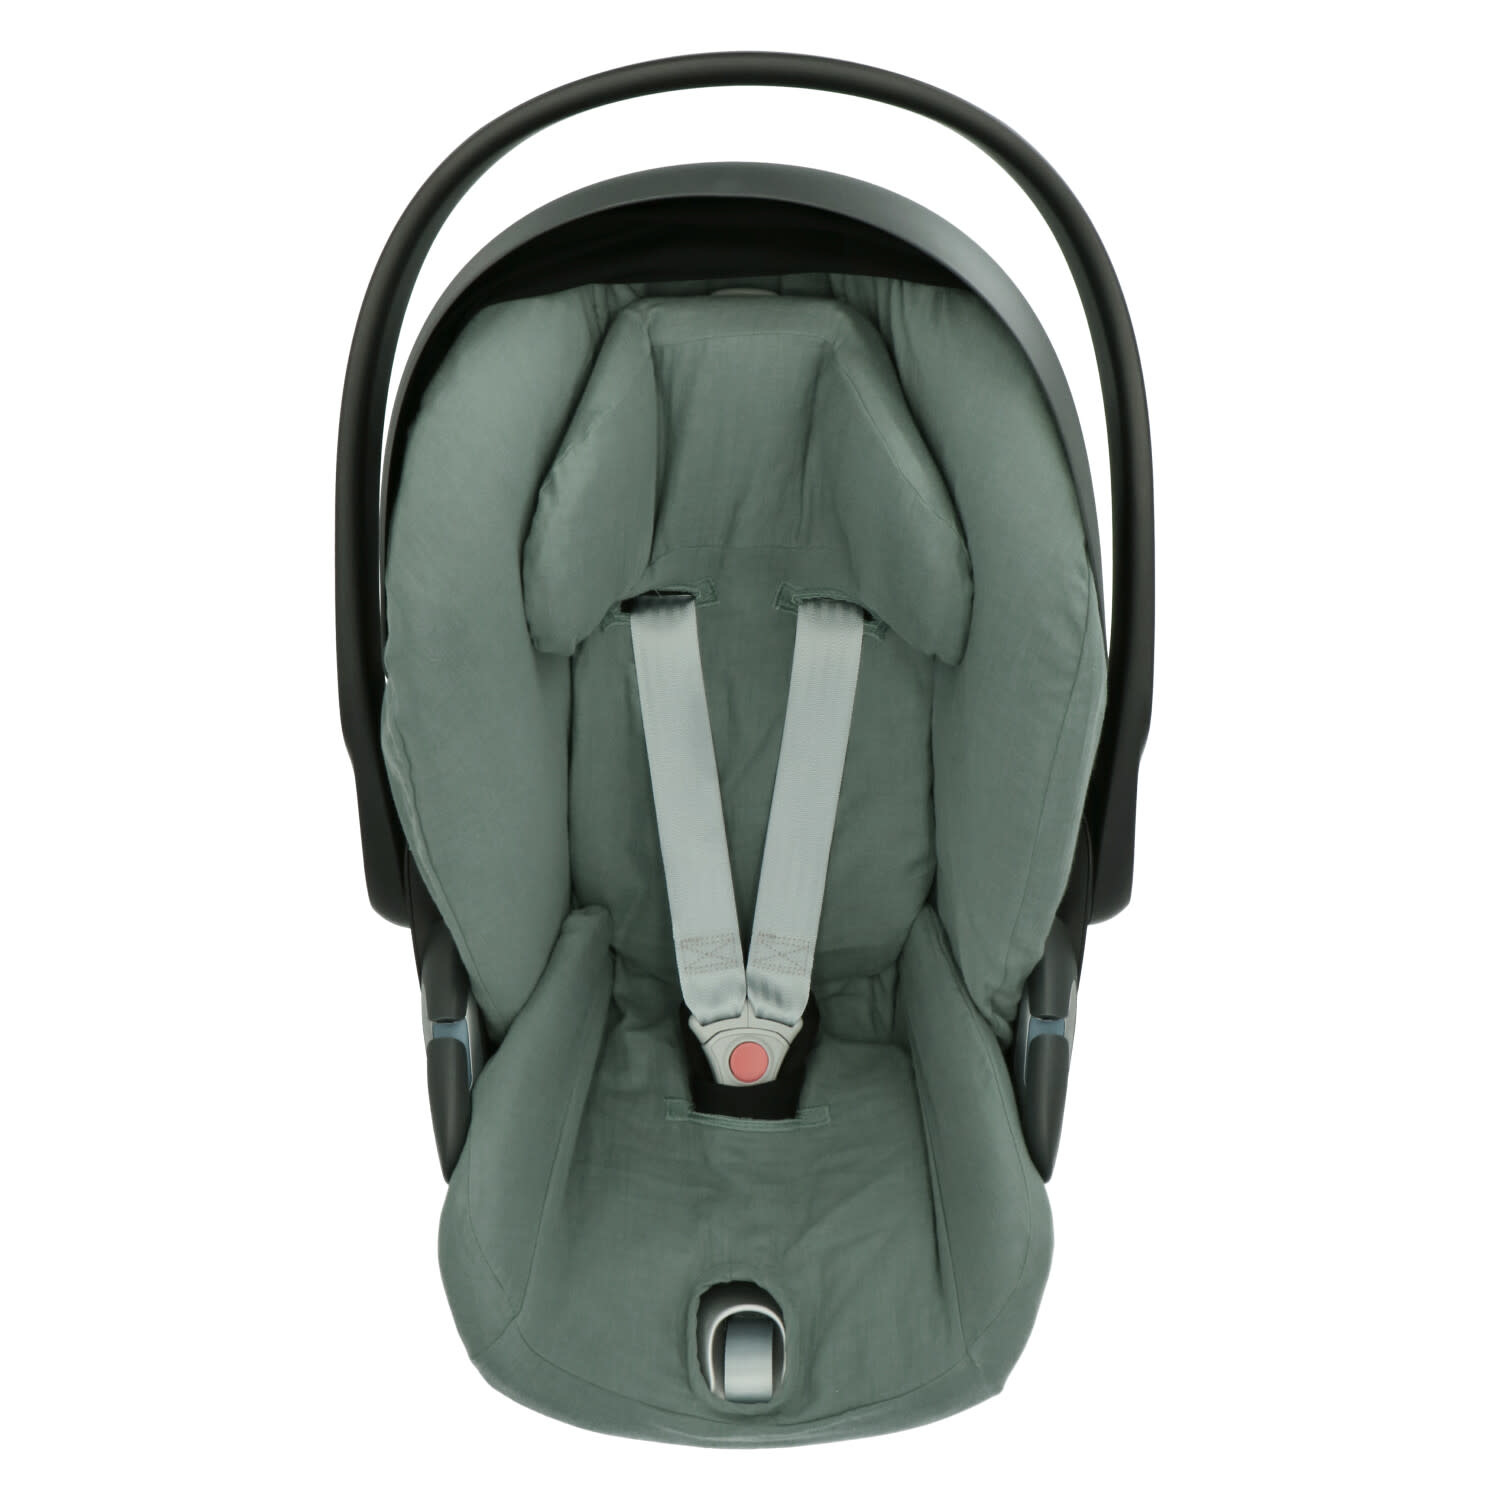 Cohen car seat cover cybex bay-1